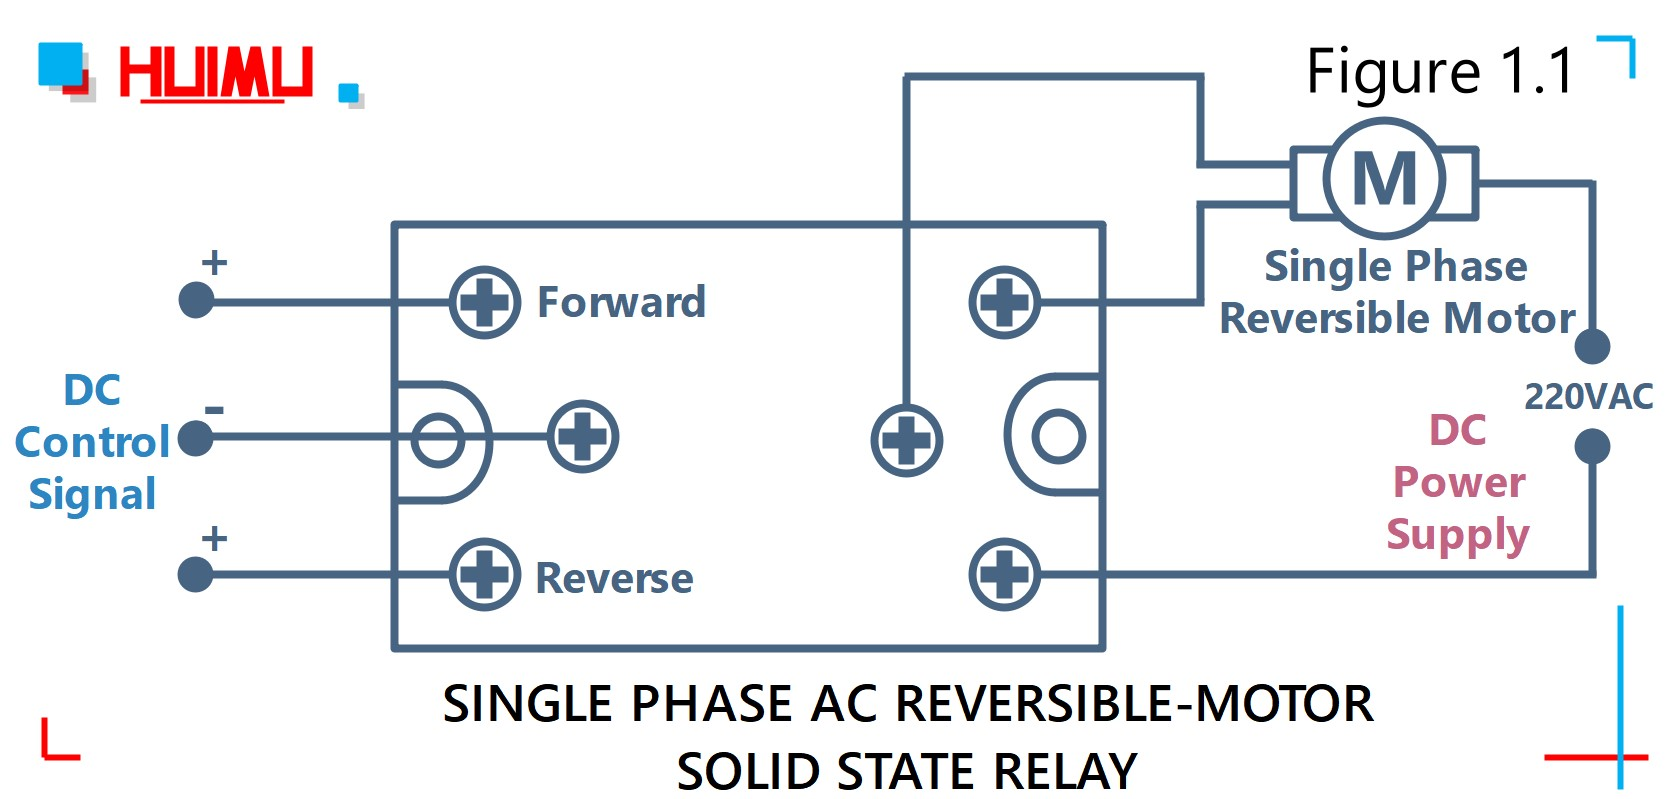 How to wire MGR mager single phase AC reversing-motor (forward-reverse) solid state relay? More detail via www.@huimultd.com